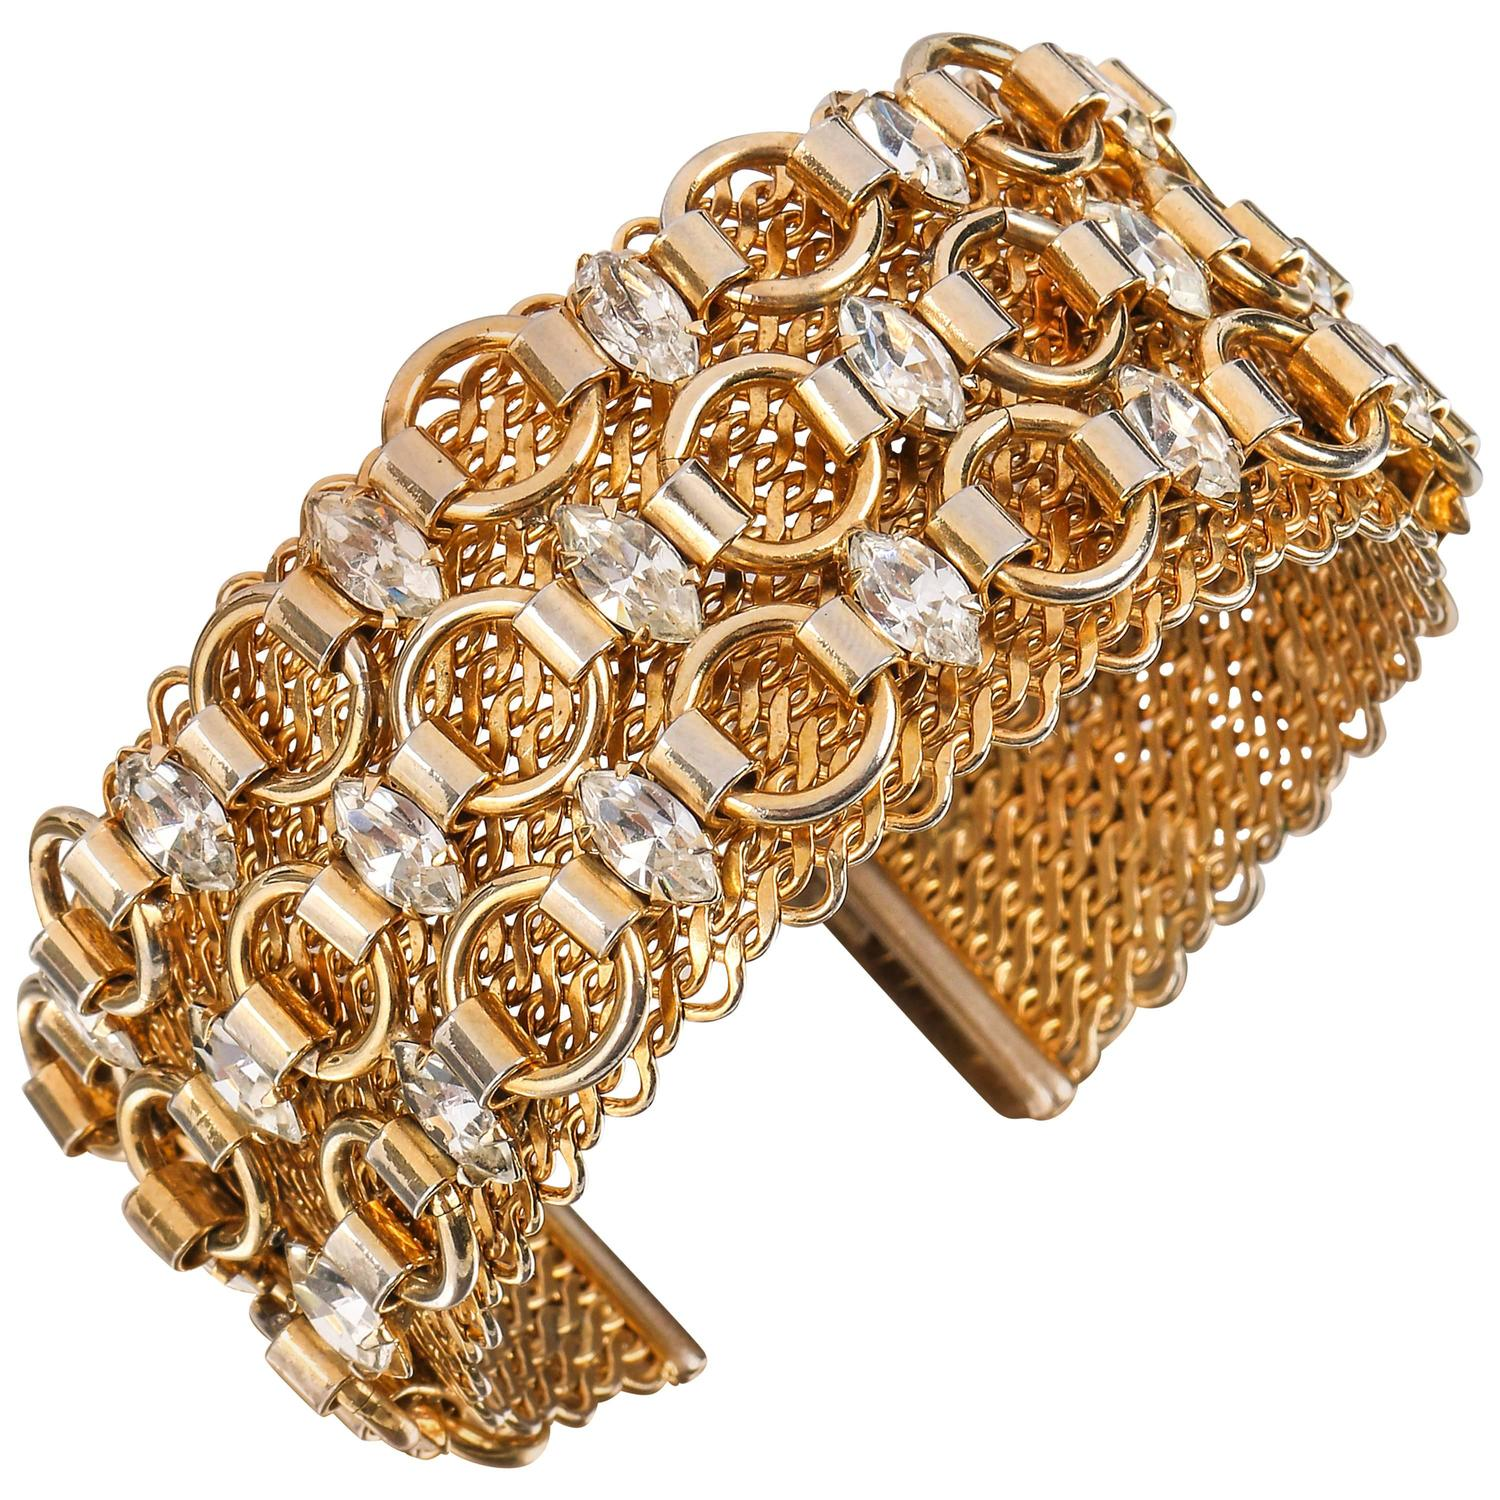 0434fe0aaad HATTIE CARNEGIE c.1960 s Gold Marquise Crystal Rhinestone Wide Cuff  Bracelet For Sale at 1stdibs